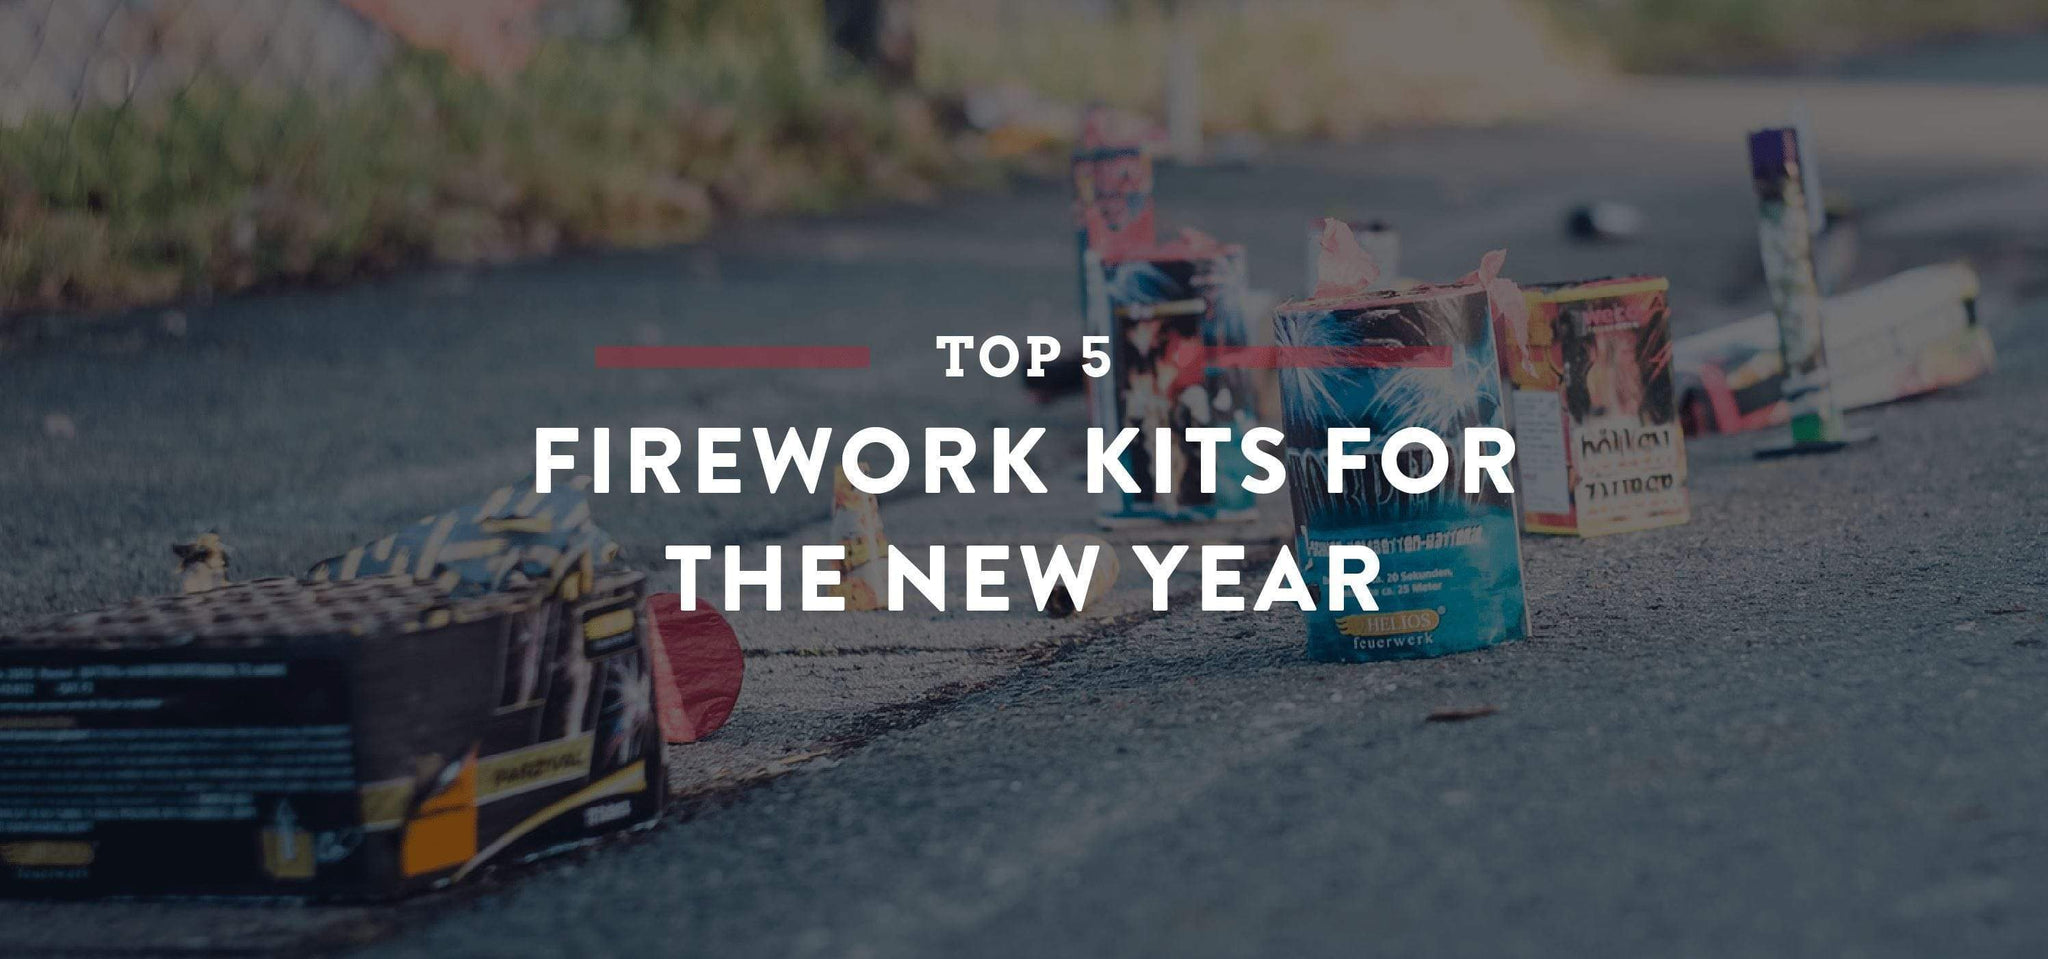 Our Top 5 Kits for a New Year's Fireworks Show